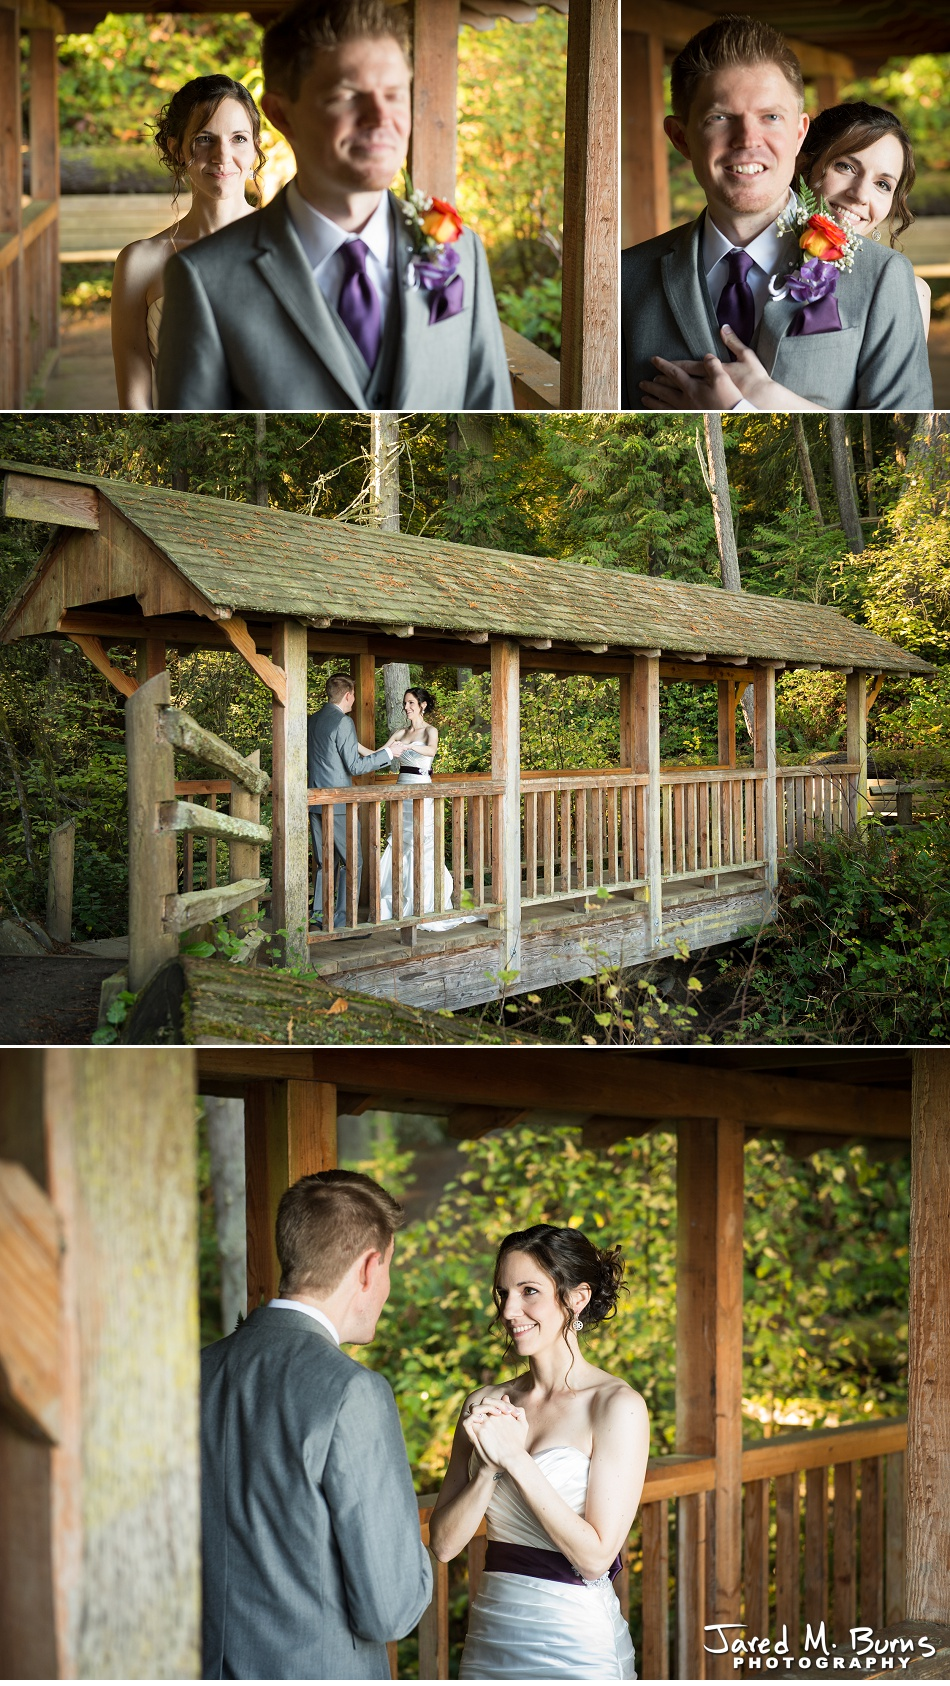 Kyle & Stephanie - Echo Falls and Washington Ferry Wedding Photographer - Jared M. Burns Photography 2